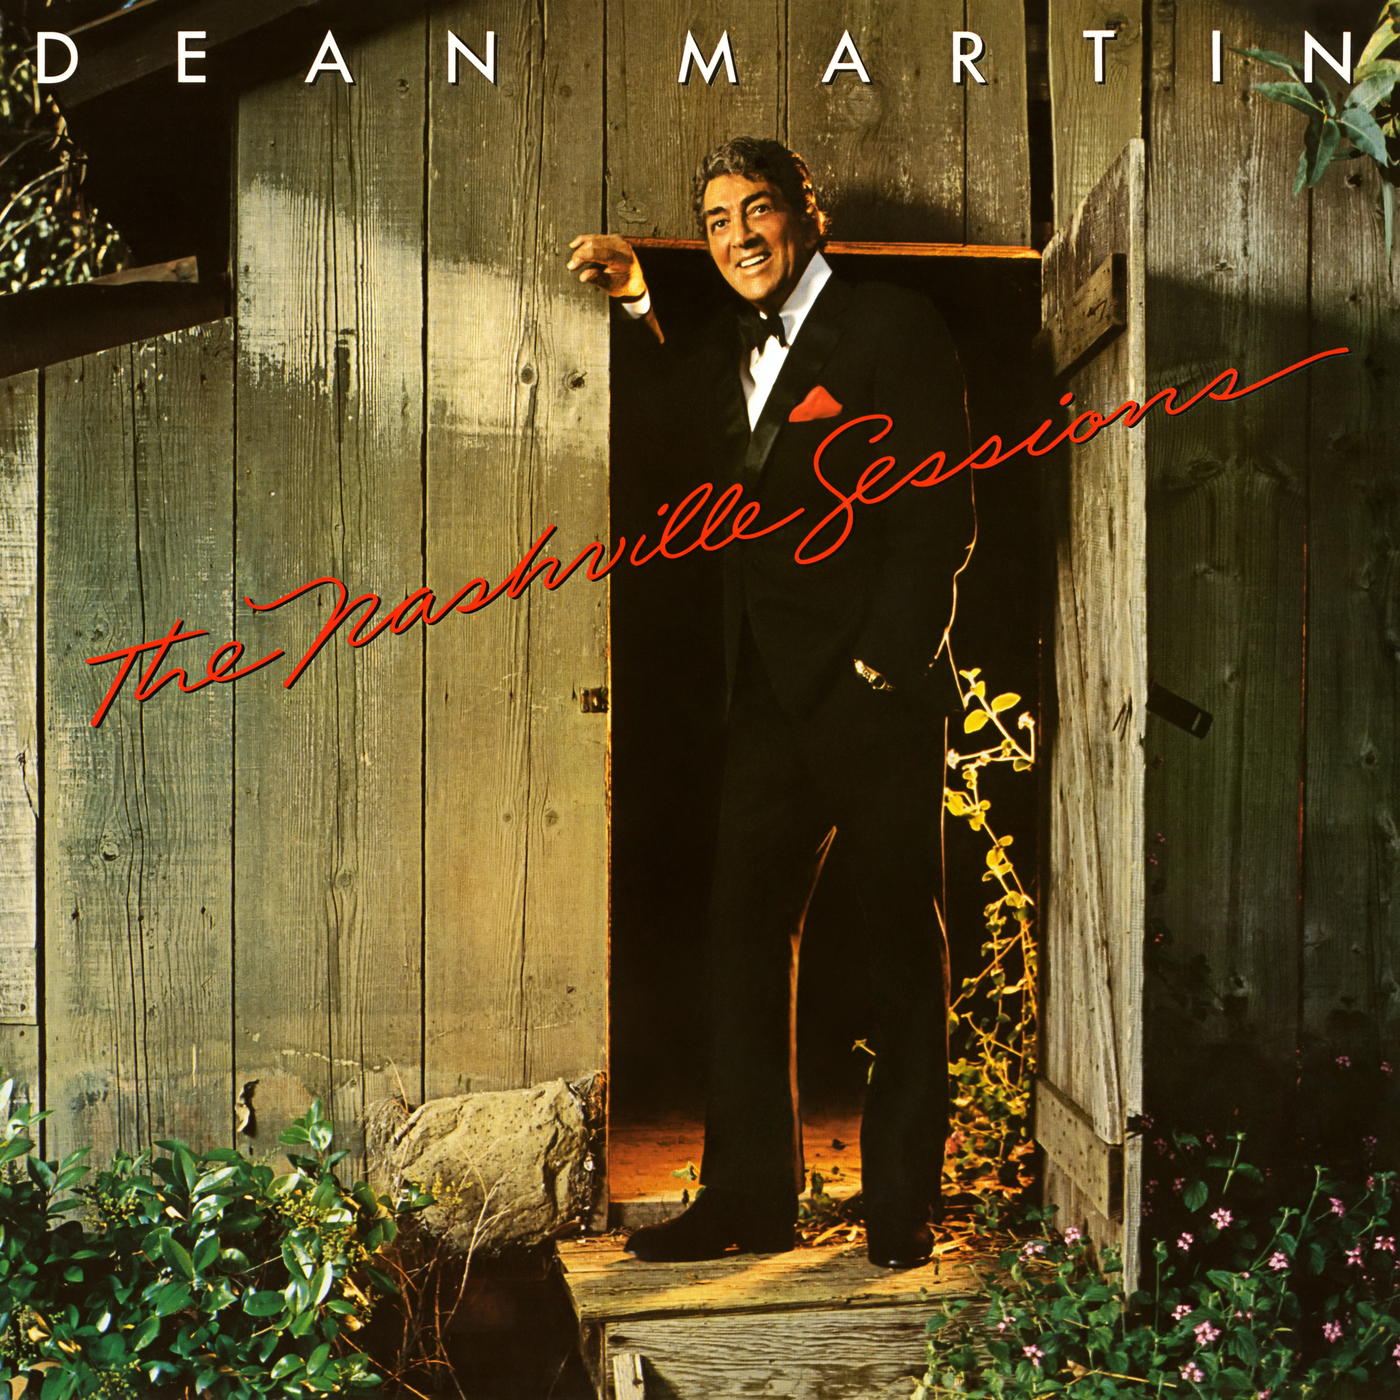 The Nashville Sessions - Dean Martin